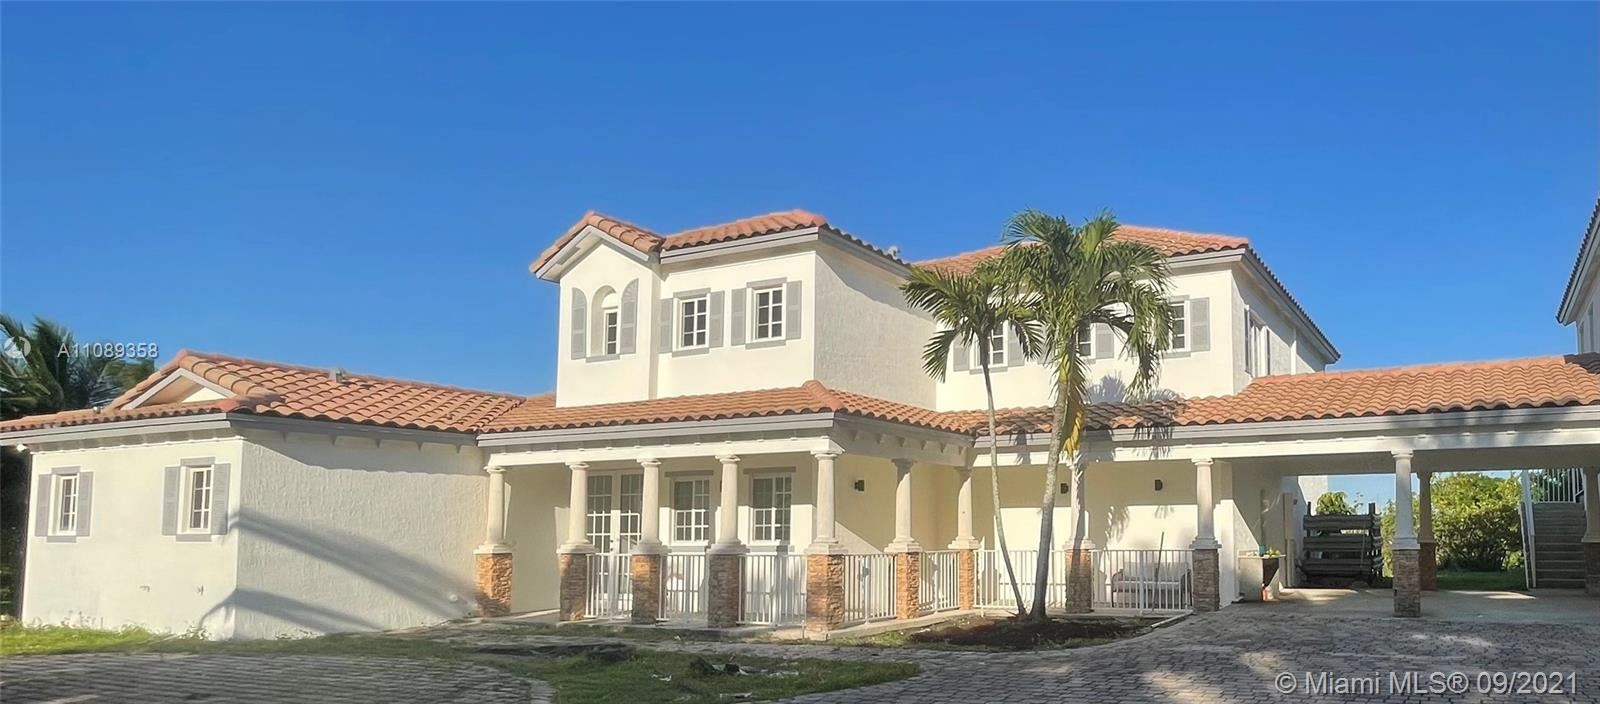 34851 SW 218th Ave, Homestead, FL 33034 - #: A11089358